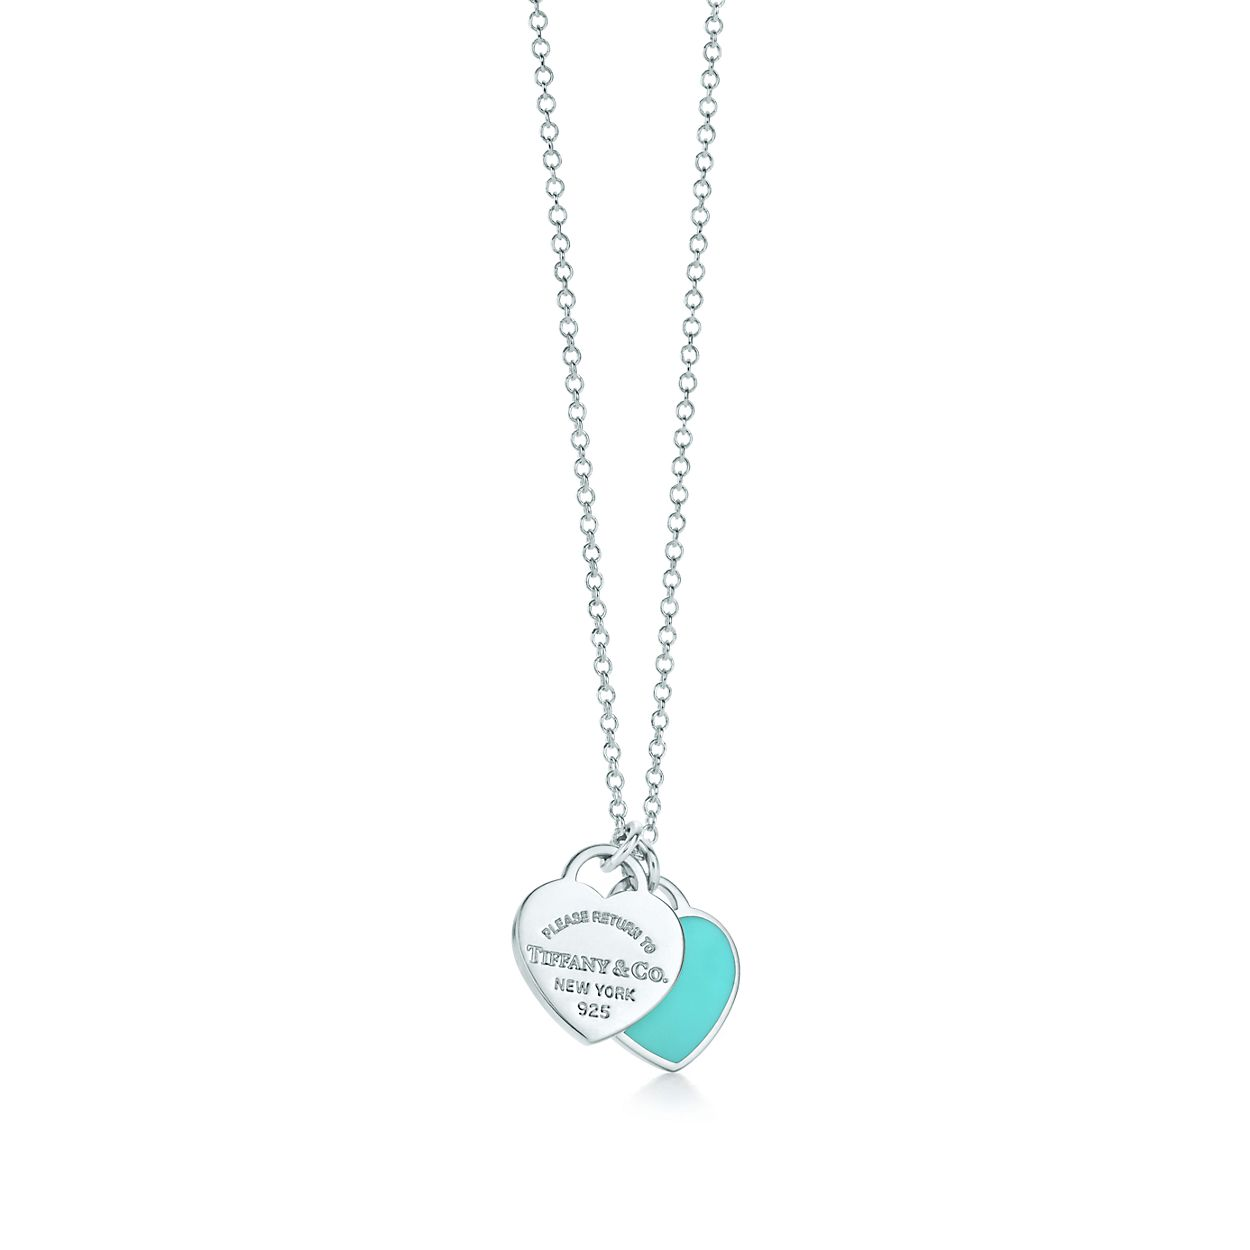 us silver heart products folded necklace fossil pdpzoom sku sterling main aemresponsive en